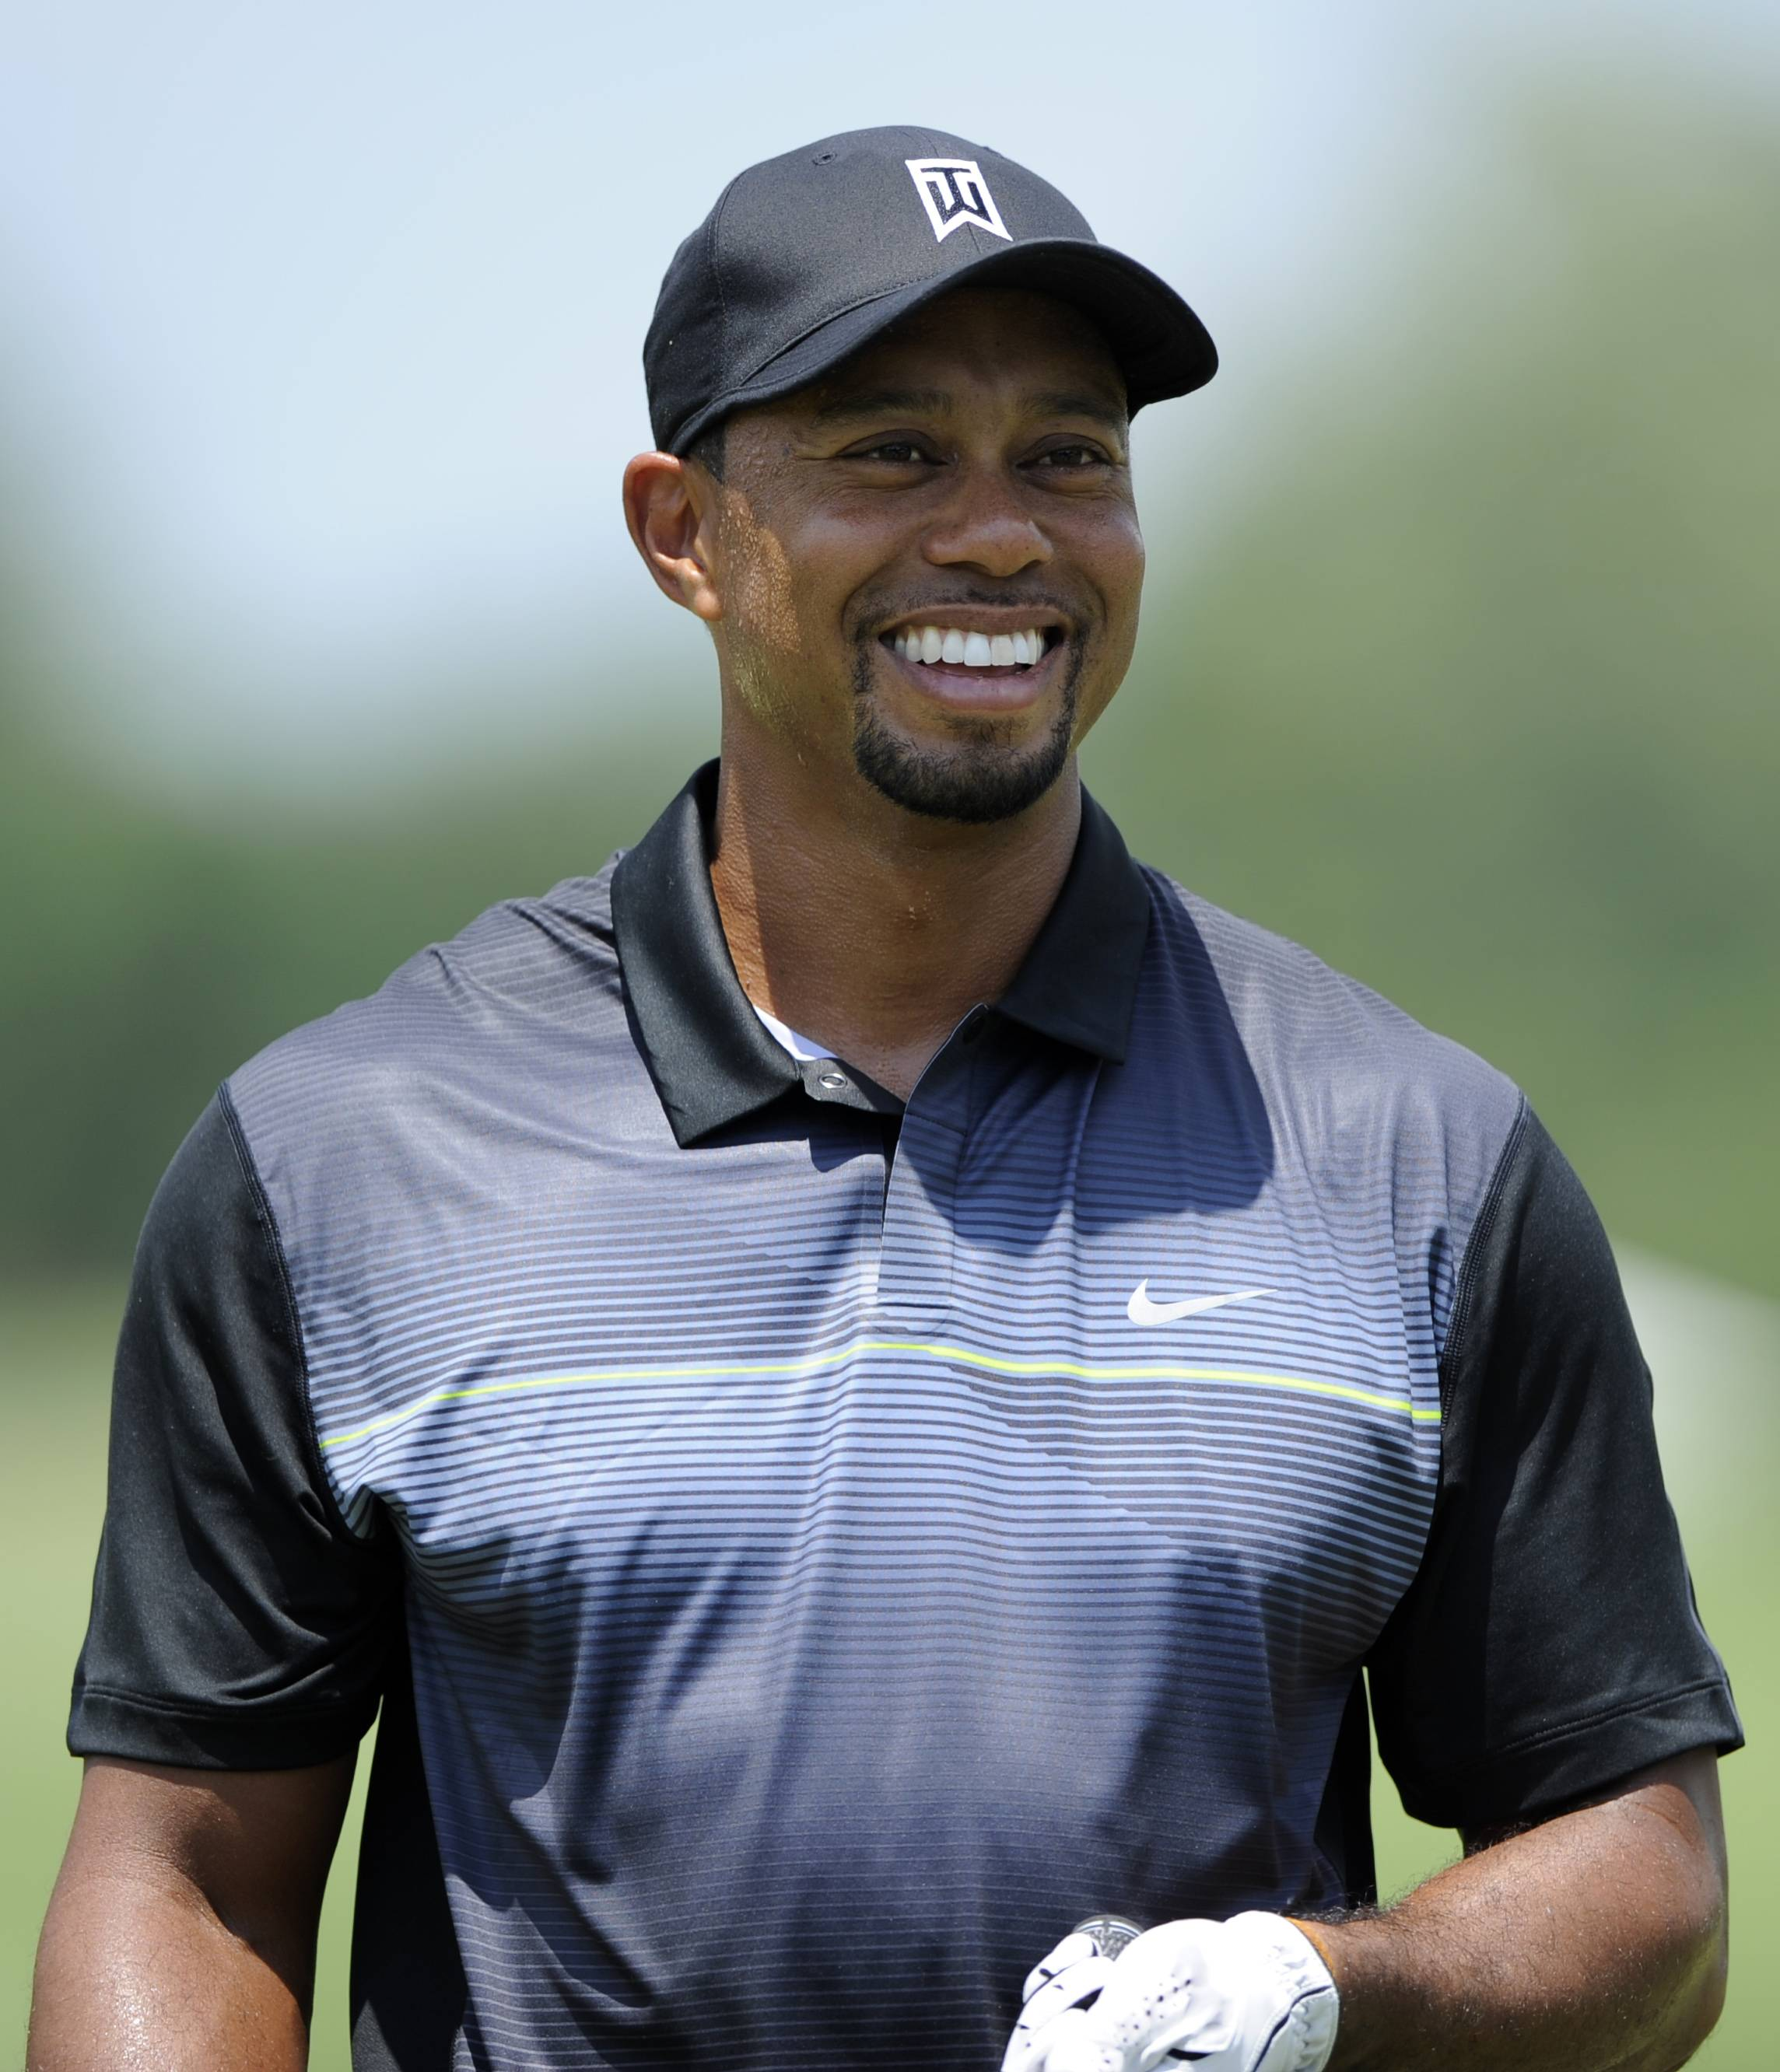 "Tiger Woods returns at the Quicken Loans National with big hopes and realistic expectations -- and with no pain. Asked for an opening comment on where he is with his recovery, Woods smiled and said, ""I'm right here.""""It's been an interesting road,"" Woods said. ""This has been quite a tedious little process, but been one where I got to a point where I can play competitive golf again. And it's pretty exciting."""